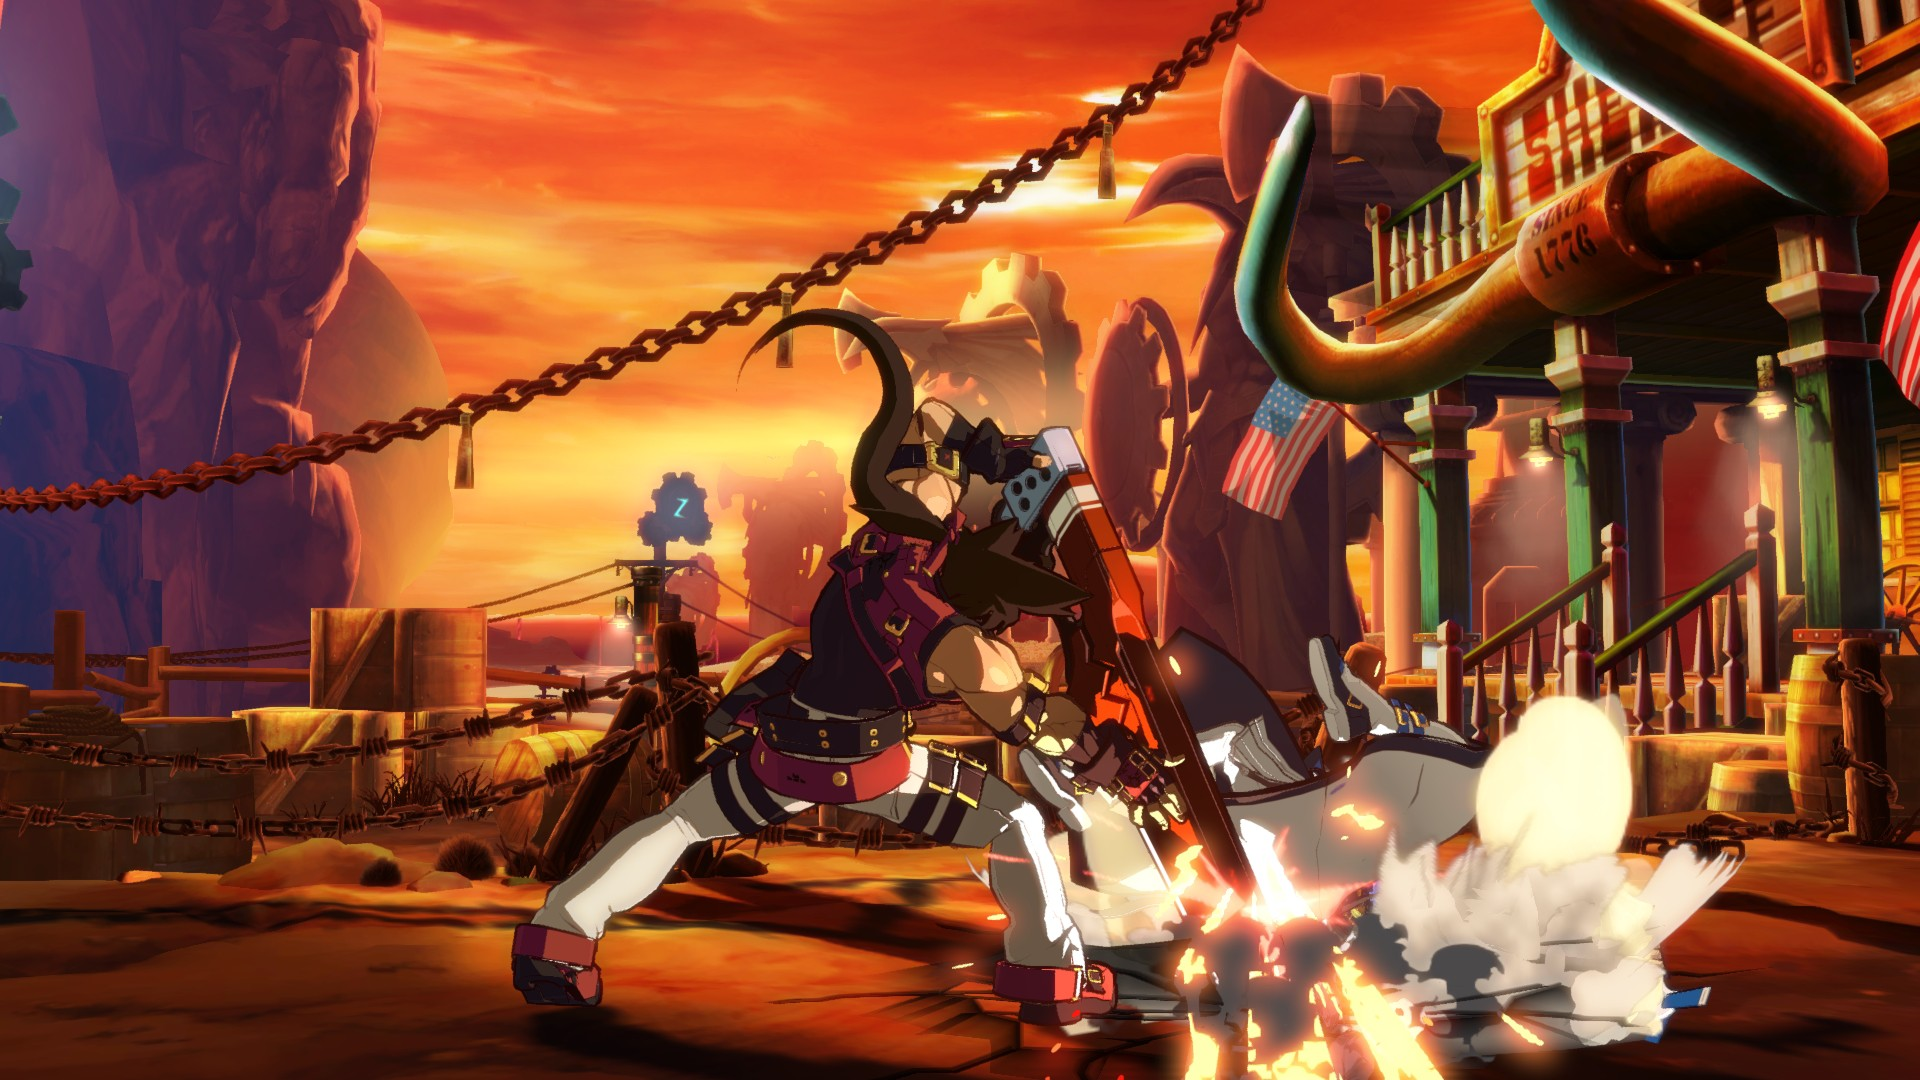 GUILTY GEAR Xrd REV 2_body_3